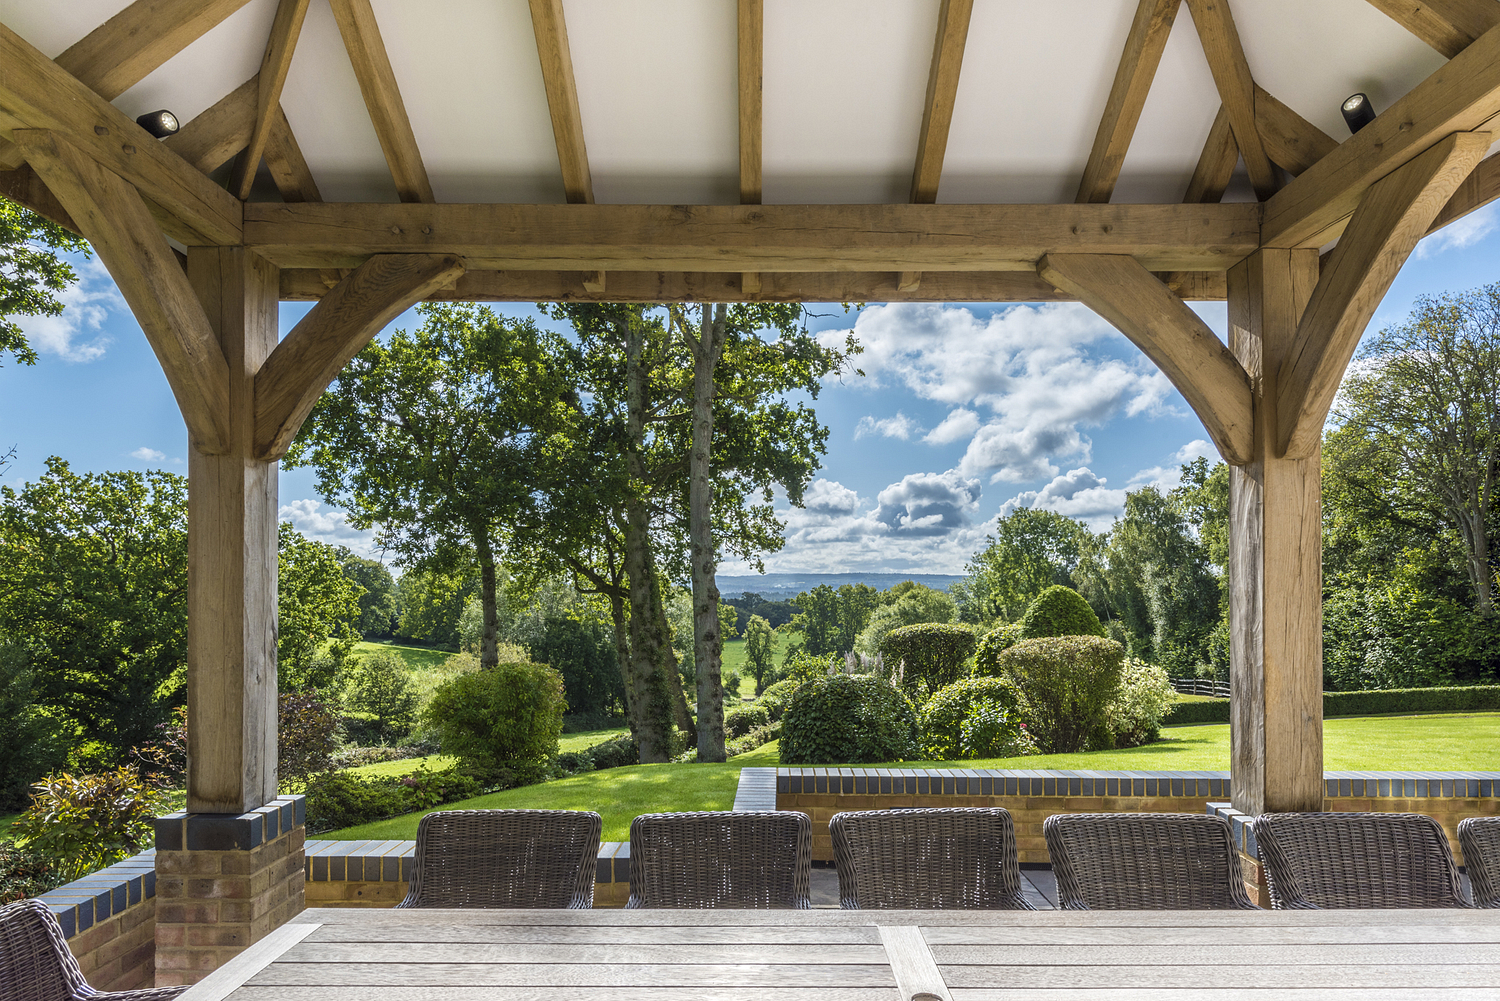 Country house view from garden outdoor dining area, Surrey